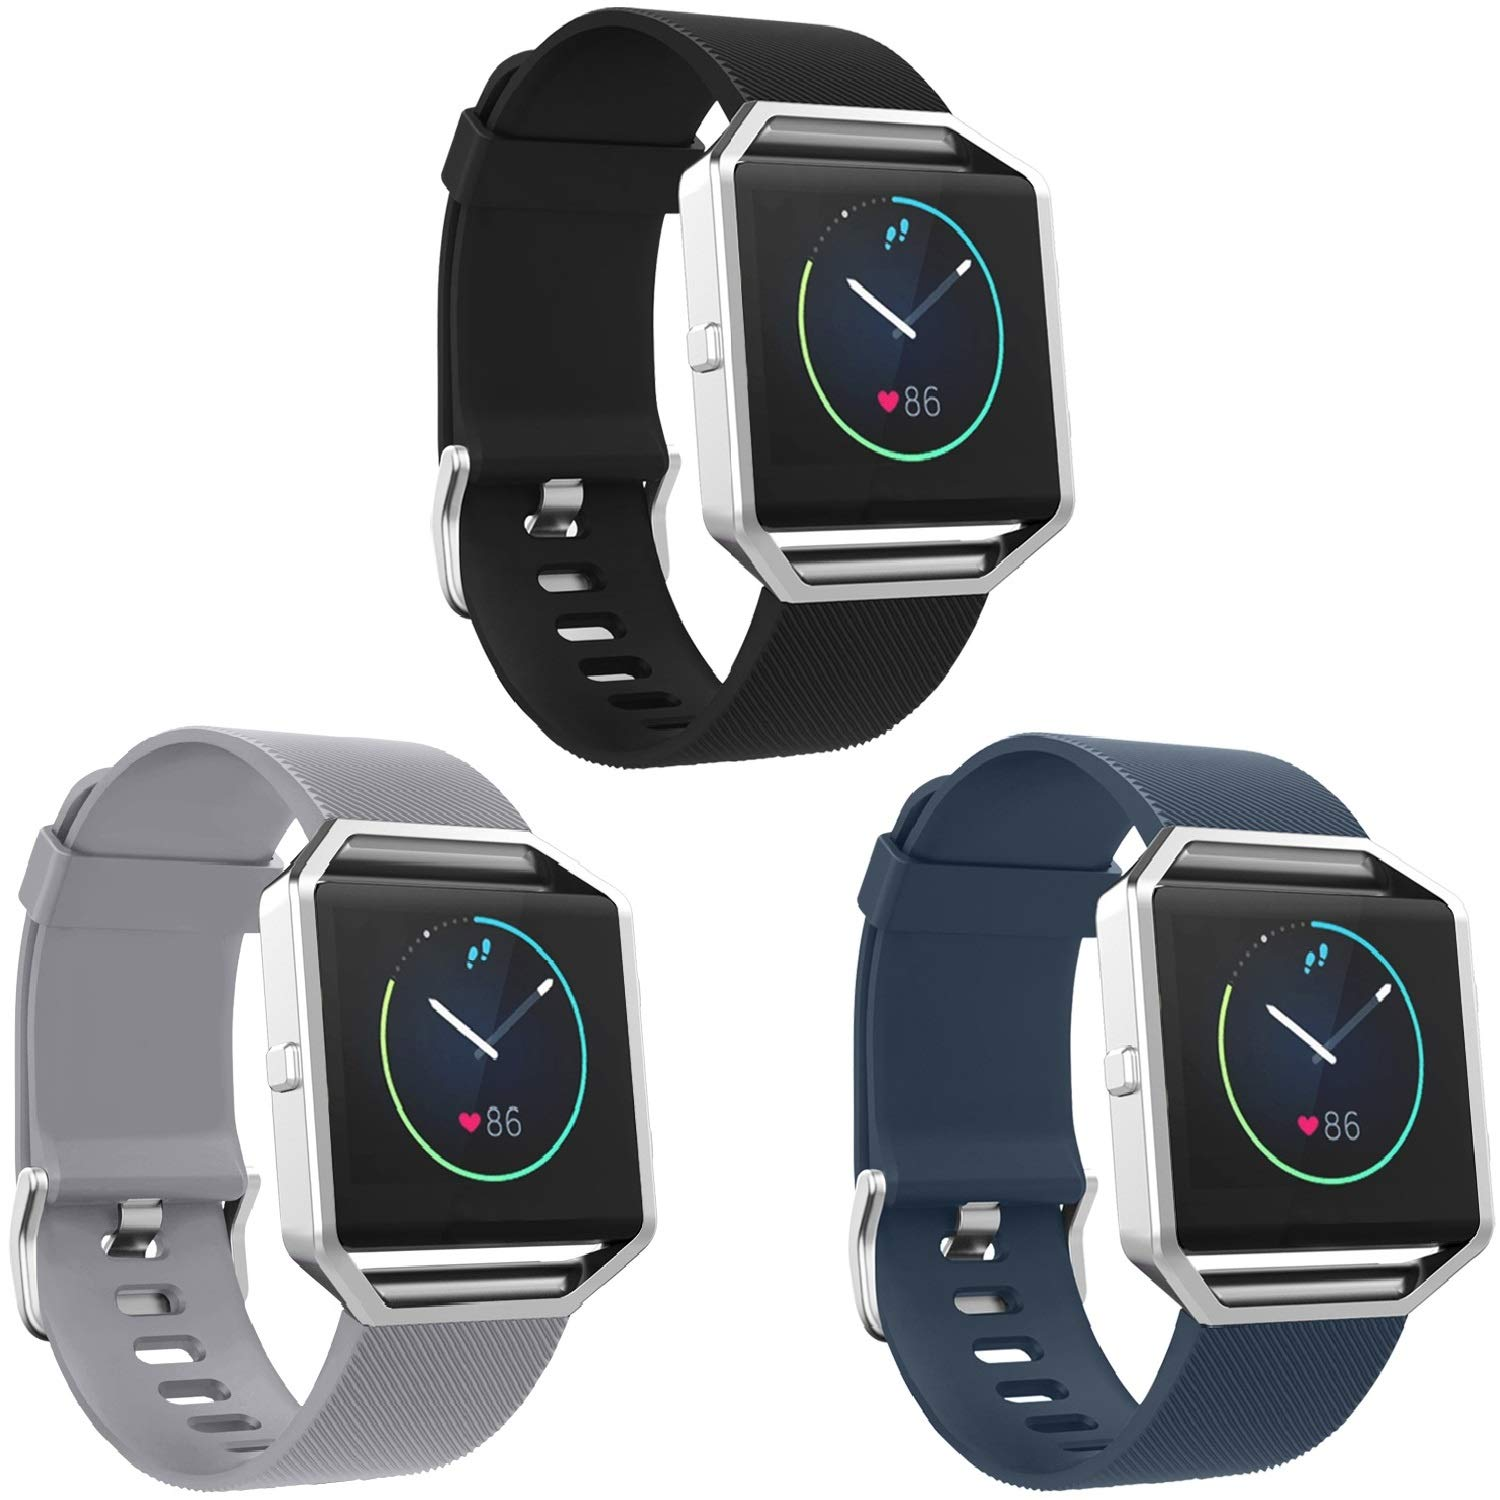 SKYLET Compatible with Fitbit Blaze Bands, 3 Pack Soft Silicone Replacement Sport Wristband with Stainless Steel Frame Compatible with Fitbit Blaze Bracelet Black Men Women by SKYLET